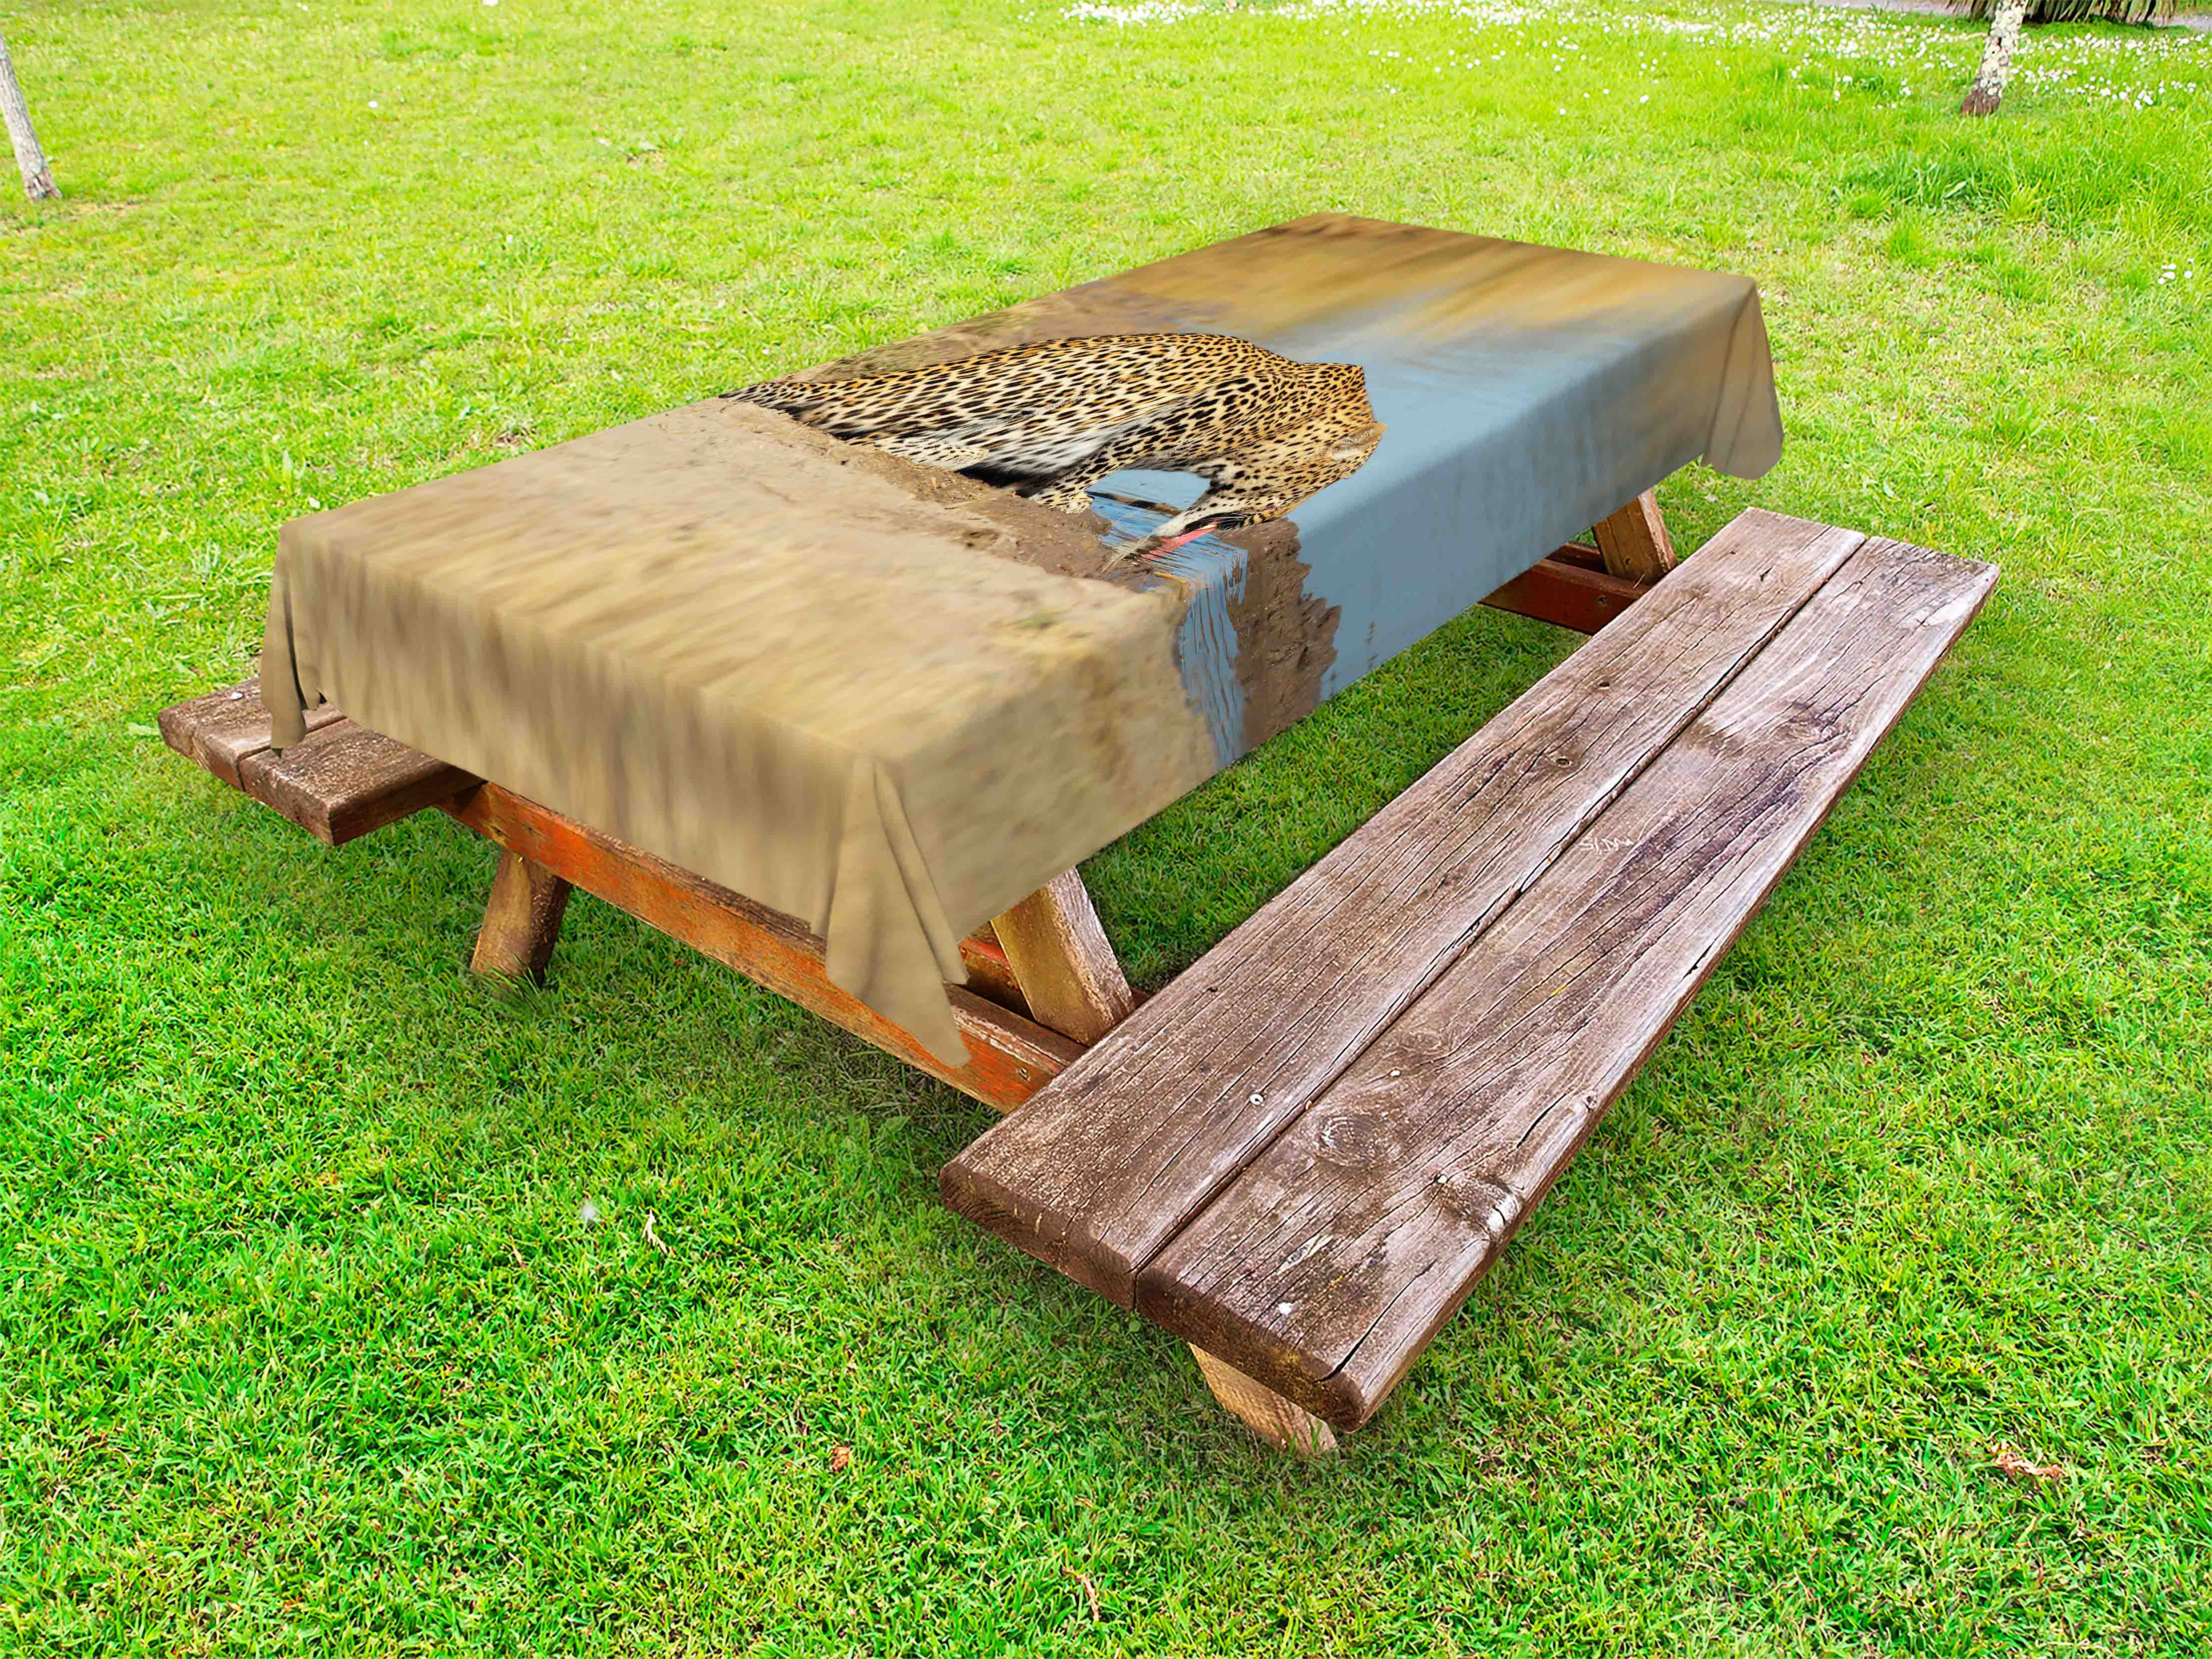 Safari outdoor tablecloth leopard panther drinking at waterhole wild south african animal documentary print decorative washable fabric picnic table cloth